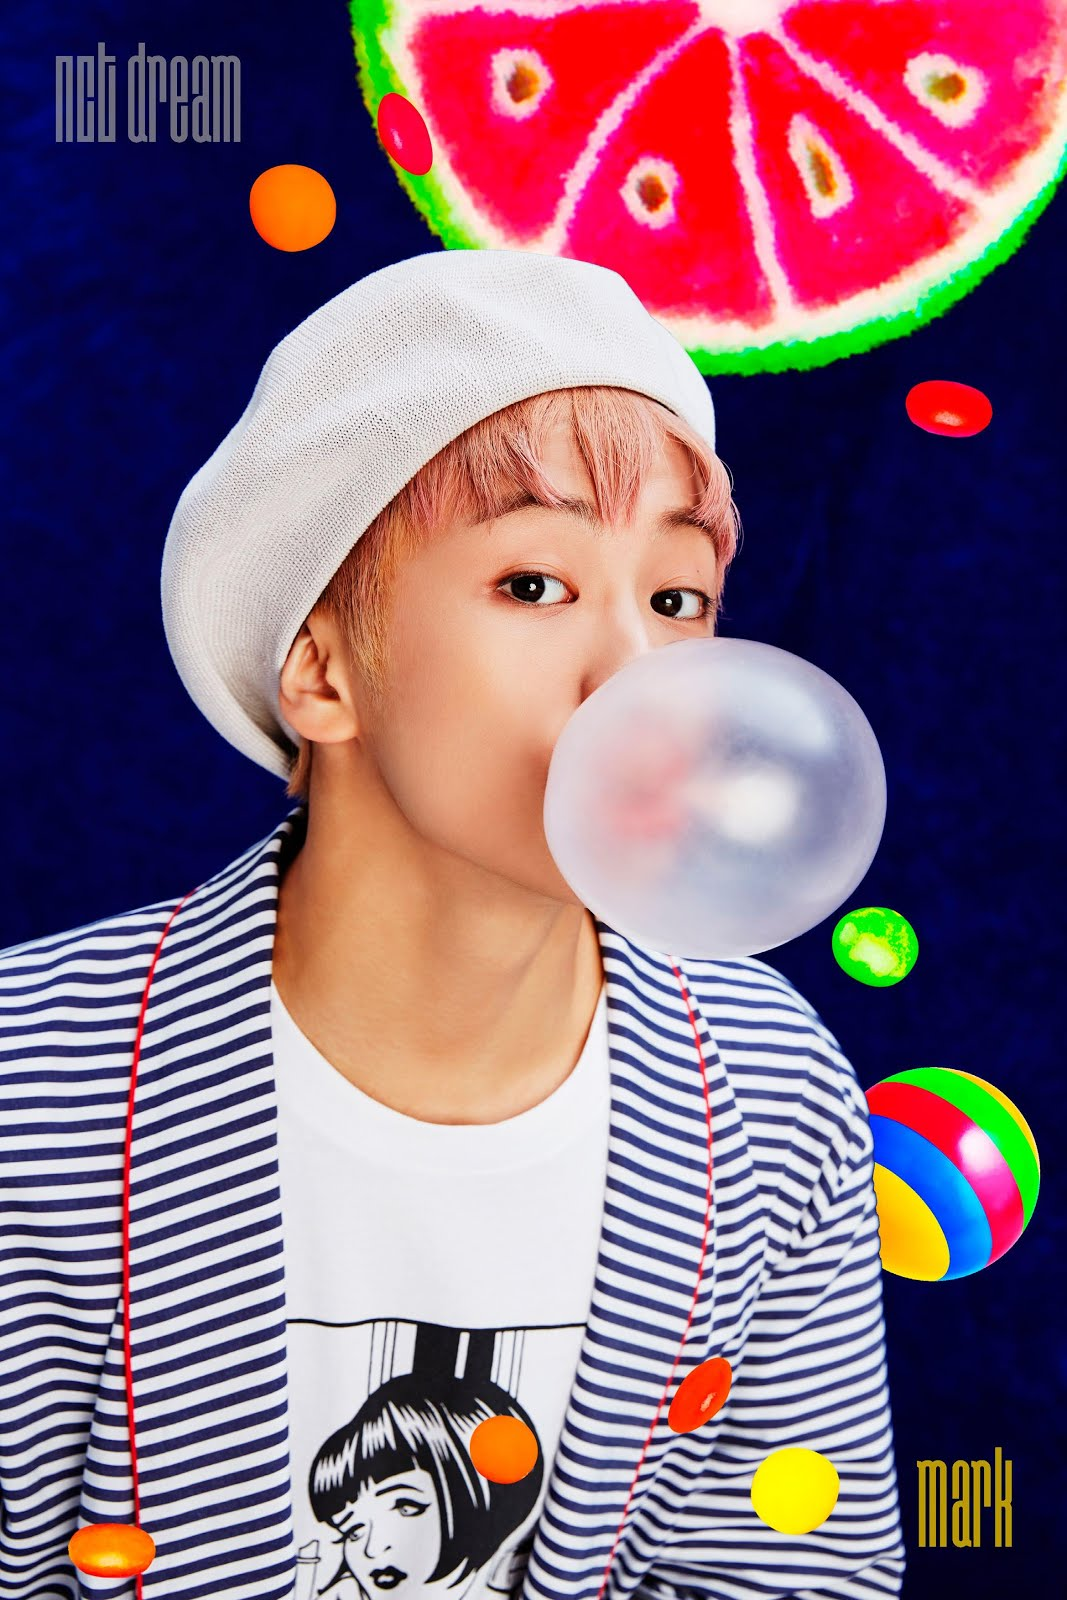 picture - nct dream 'chewing gum' iTunes digital booklet